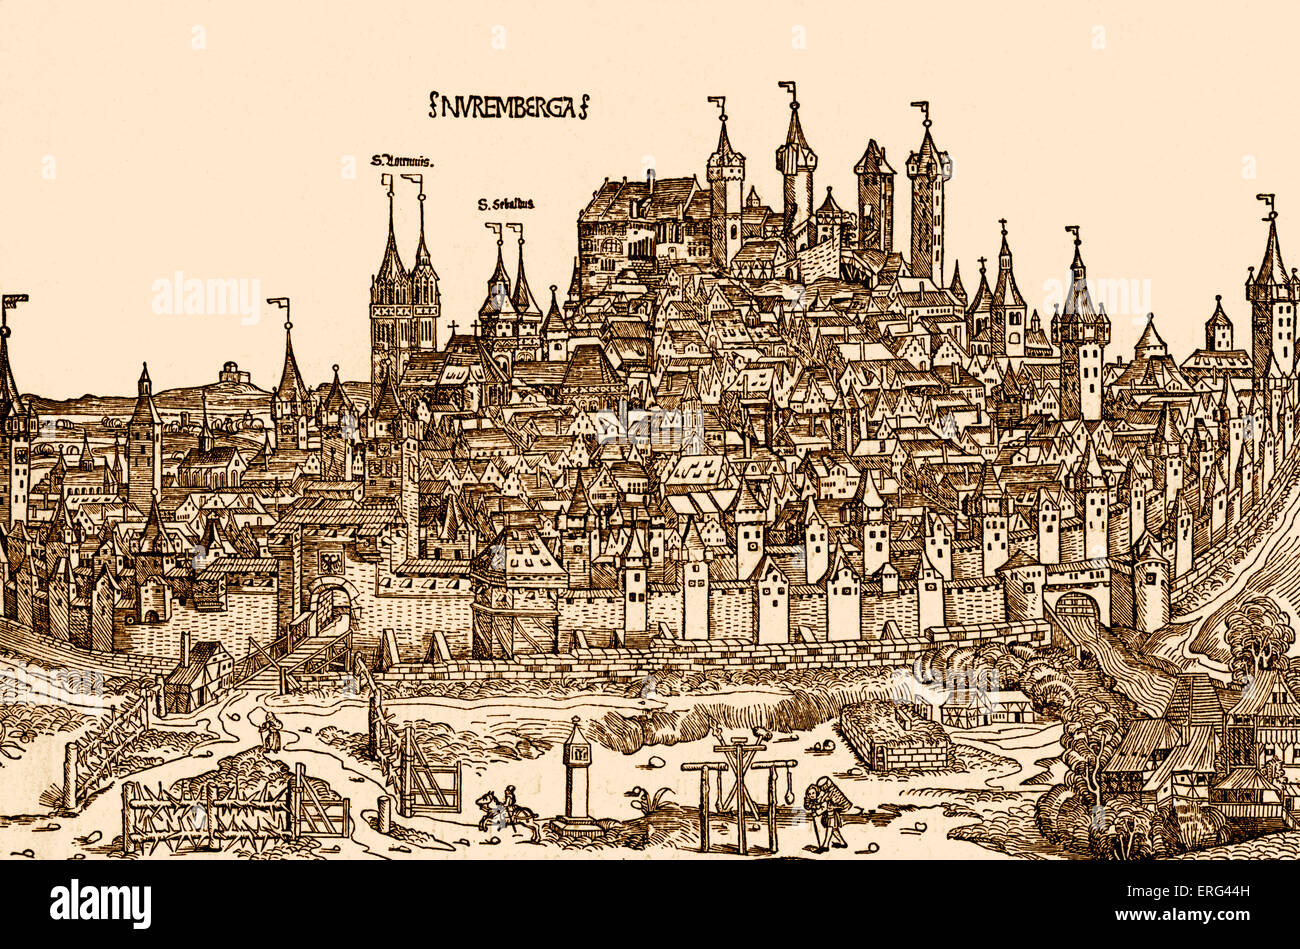 Nurnburg view  in the 15th century.  From Hartmann Schedel's 'Chronicle of the World'  /Weltchronik. - Stock Image